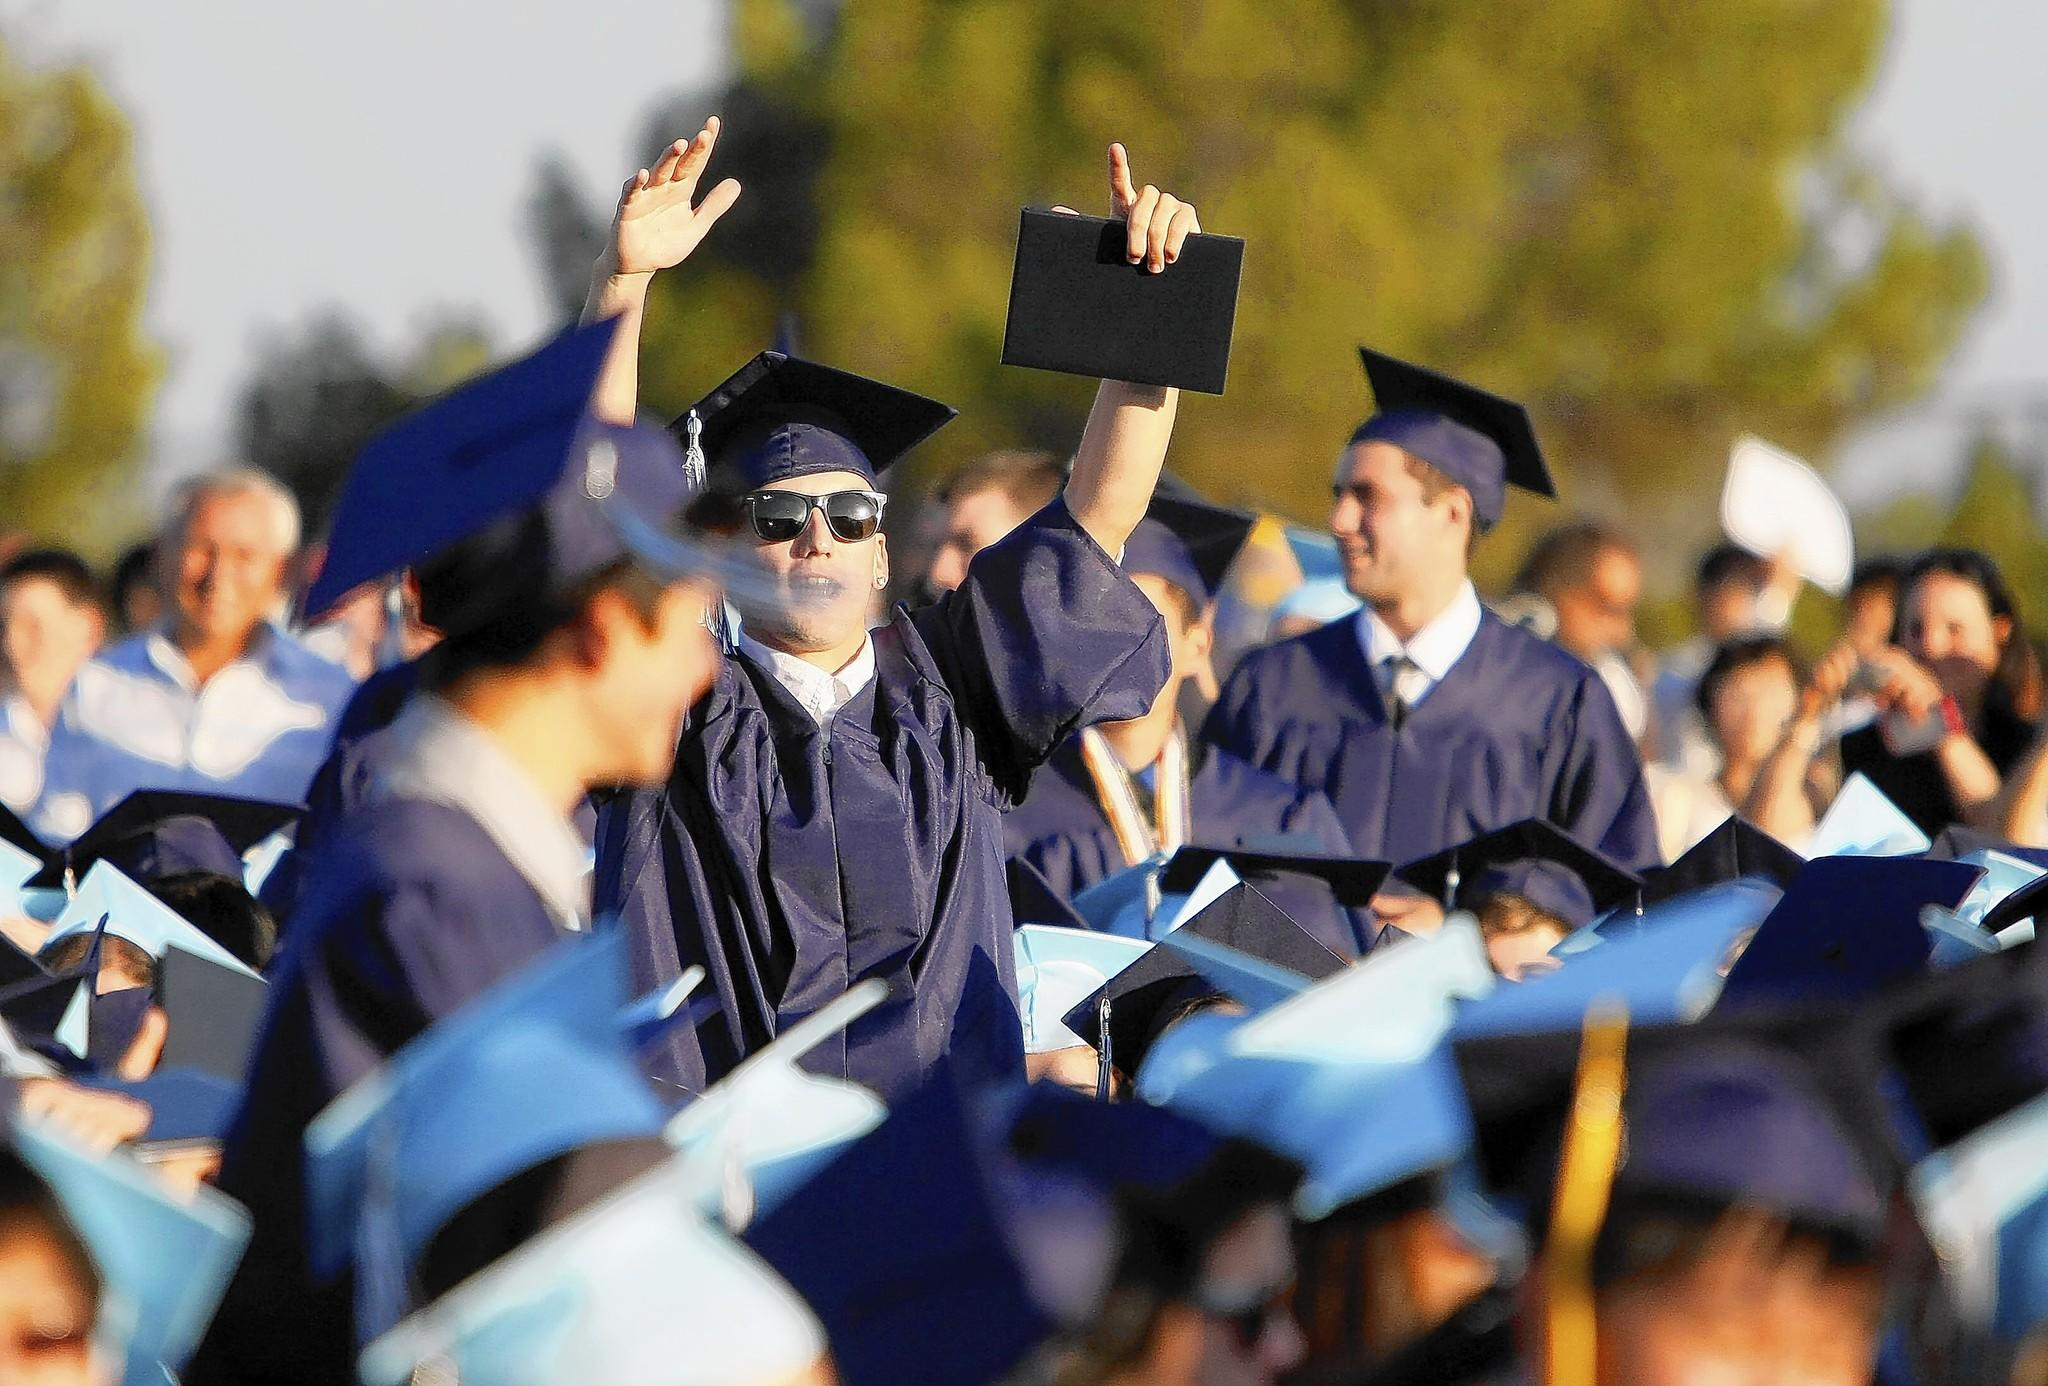 Crescenta Valley High School students celebrate during commencement in La Crescenta on Tuesday, June 4, 2013.